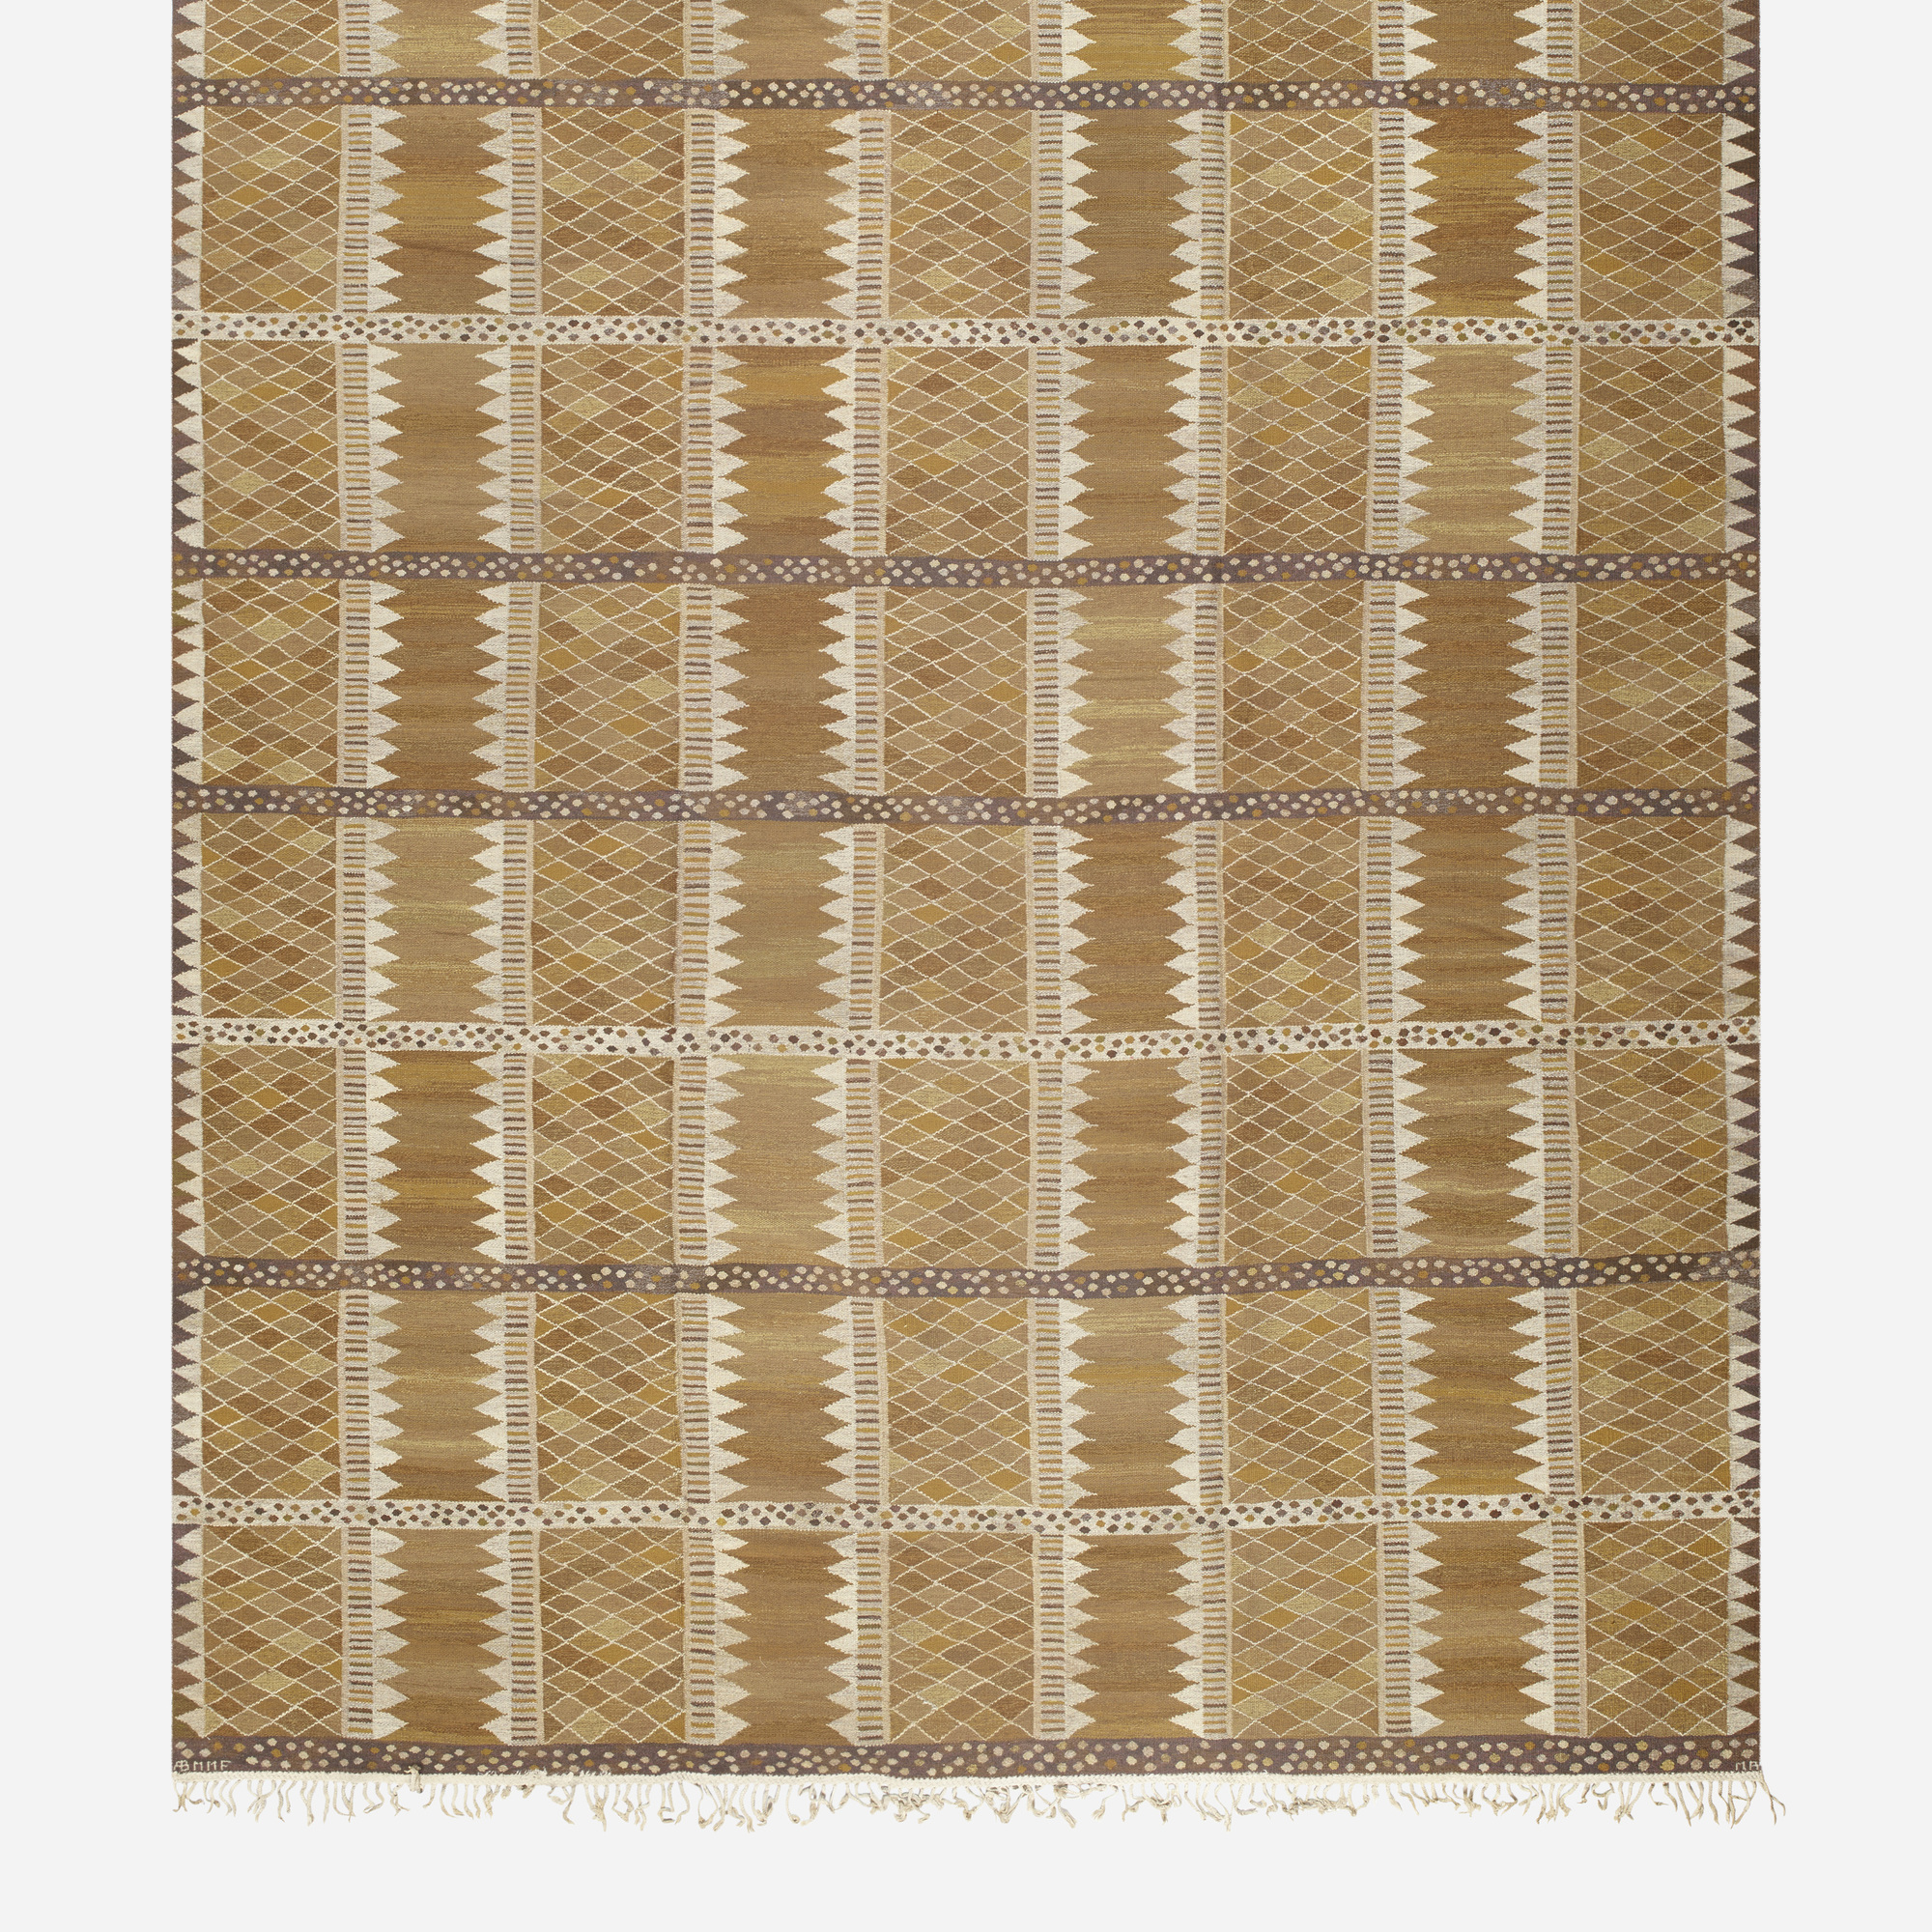 140: Marianne Richter / Josefina tapestry weave carpet (2 of 2)